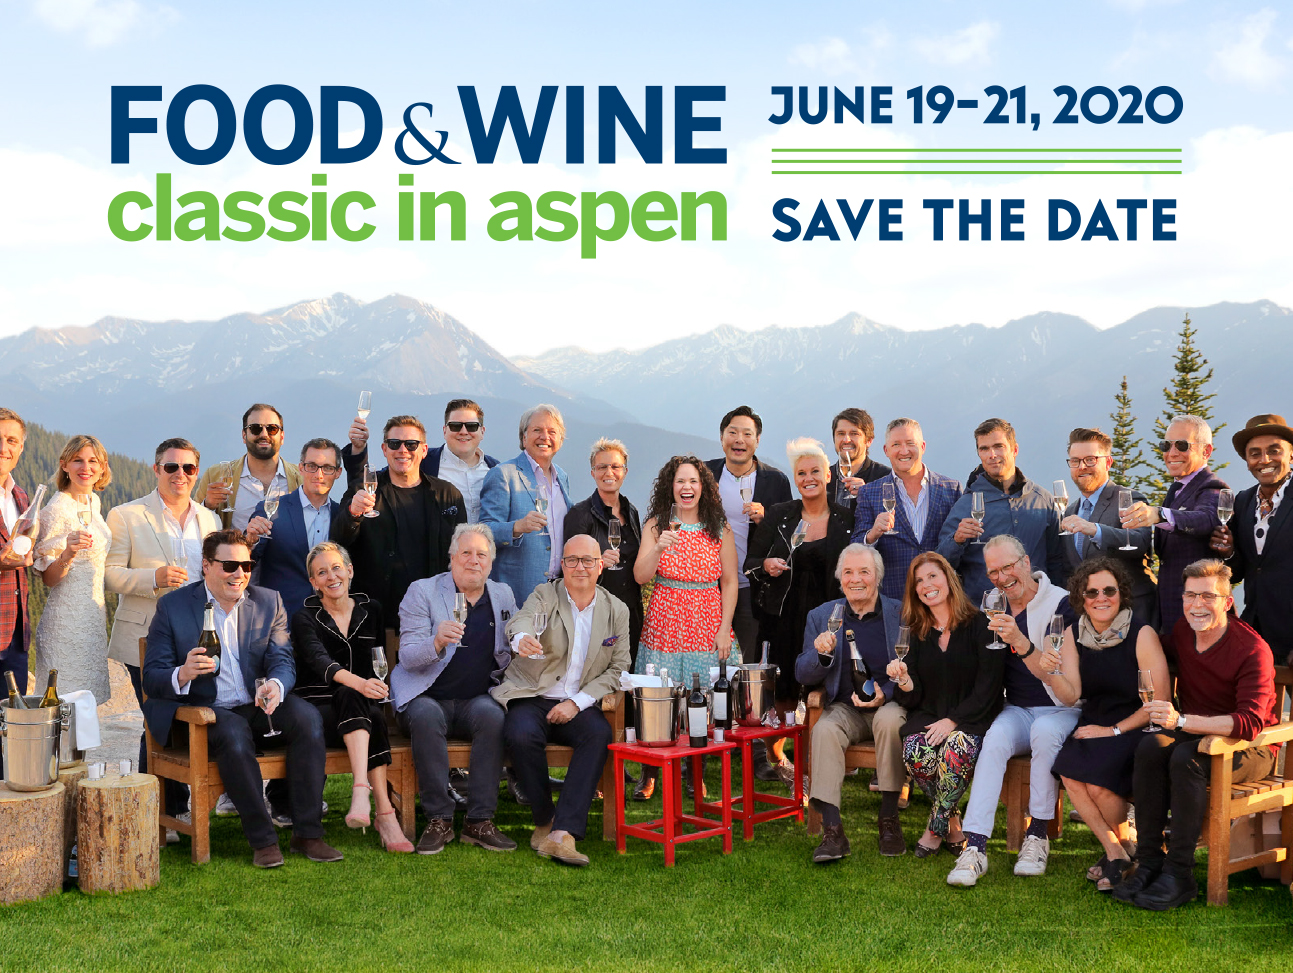 new-crop-aspen-promo-hp-0719.jpg